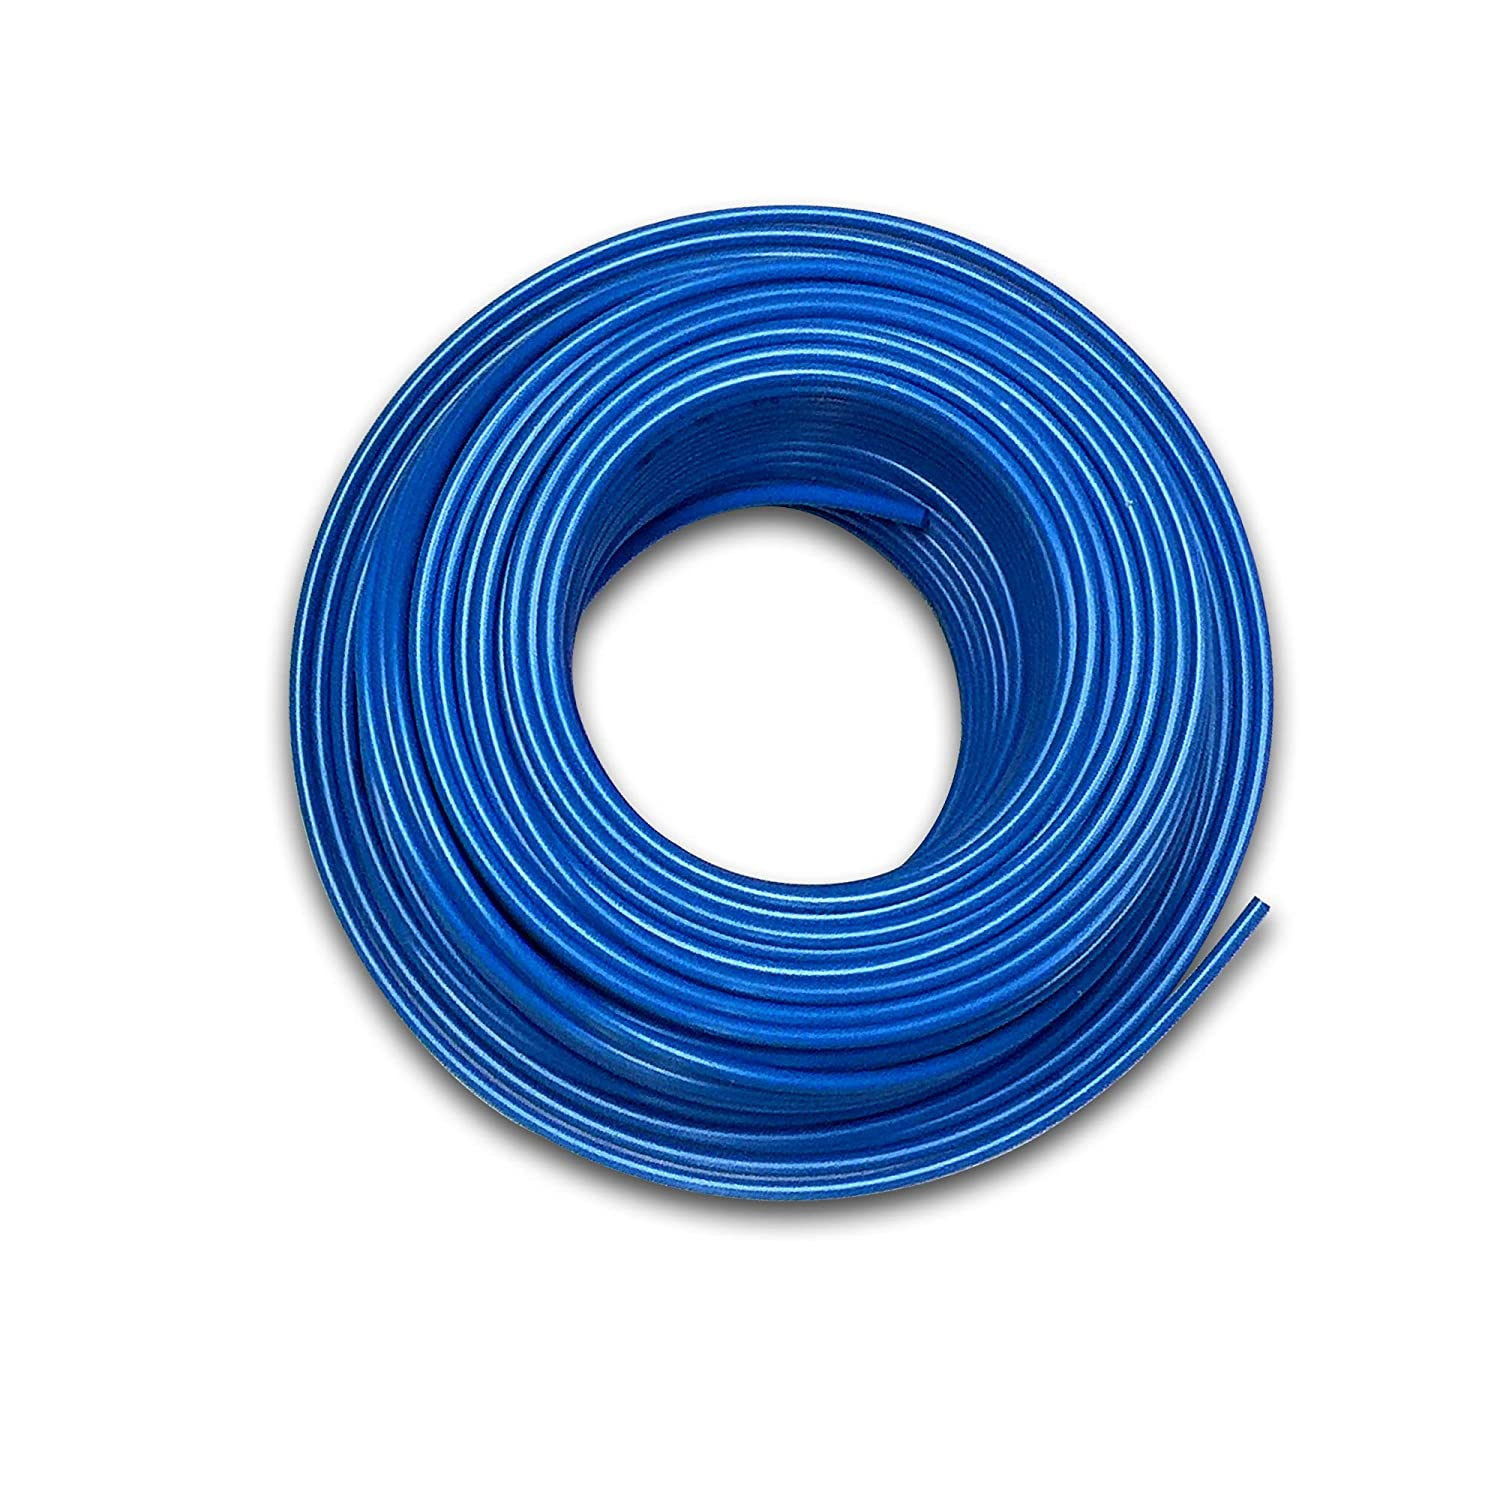 Food Grade 1/4 Inch Plastic Tubing for RO Water Filter System, Aquariums, Refrigerators, ECT (30 Feet, Blue)